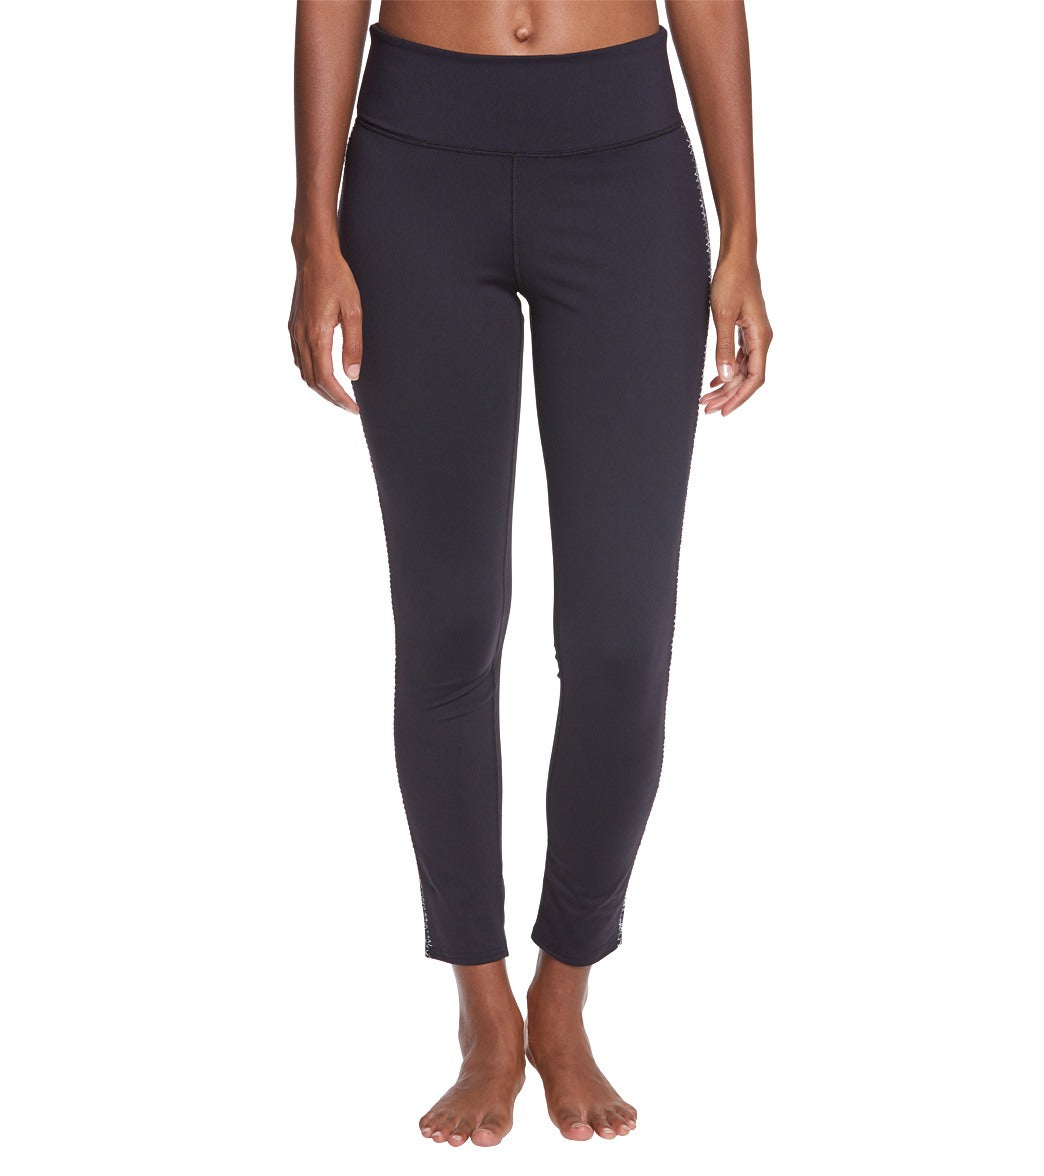 Free People Movement Stitch In Time Yoga Leggings - Black Spandex